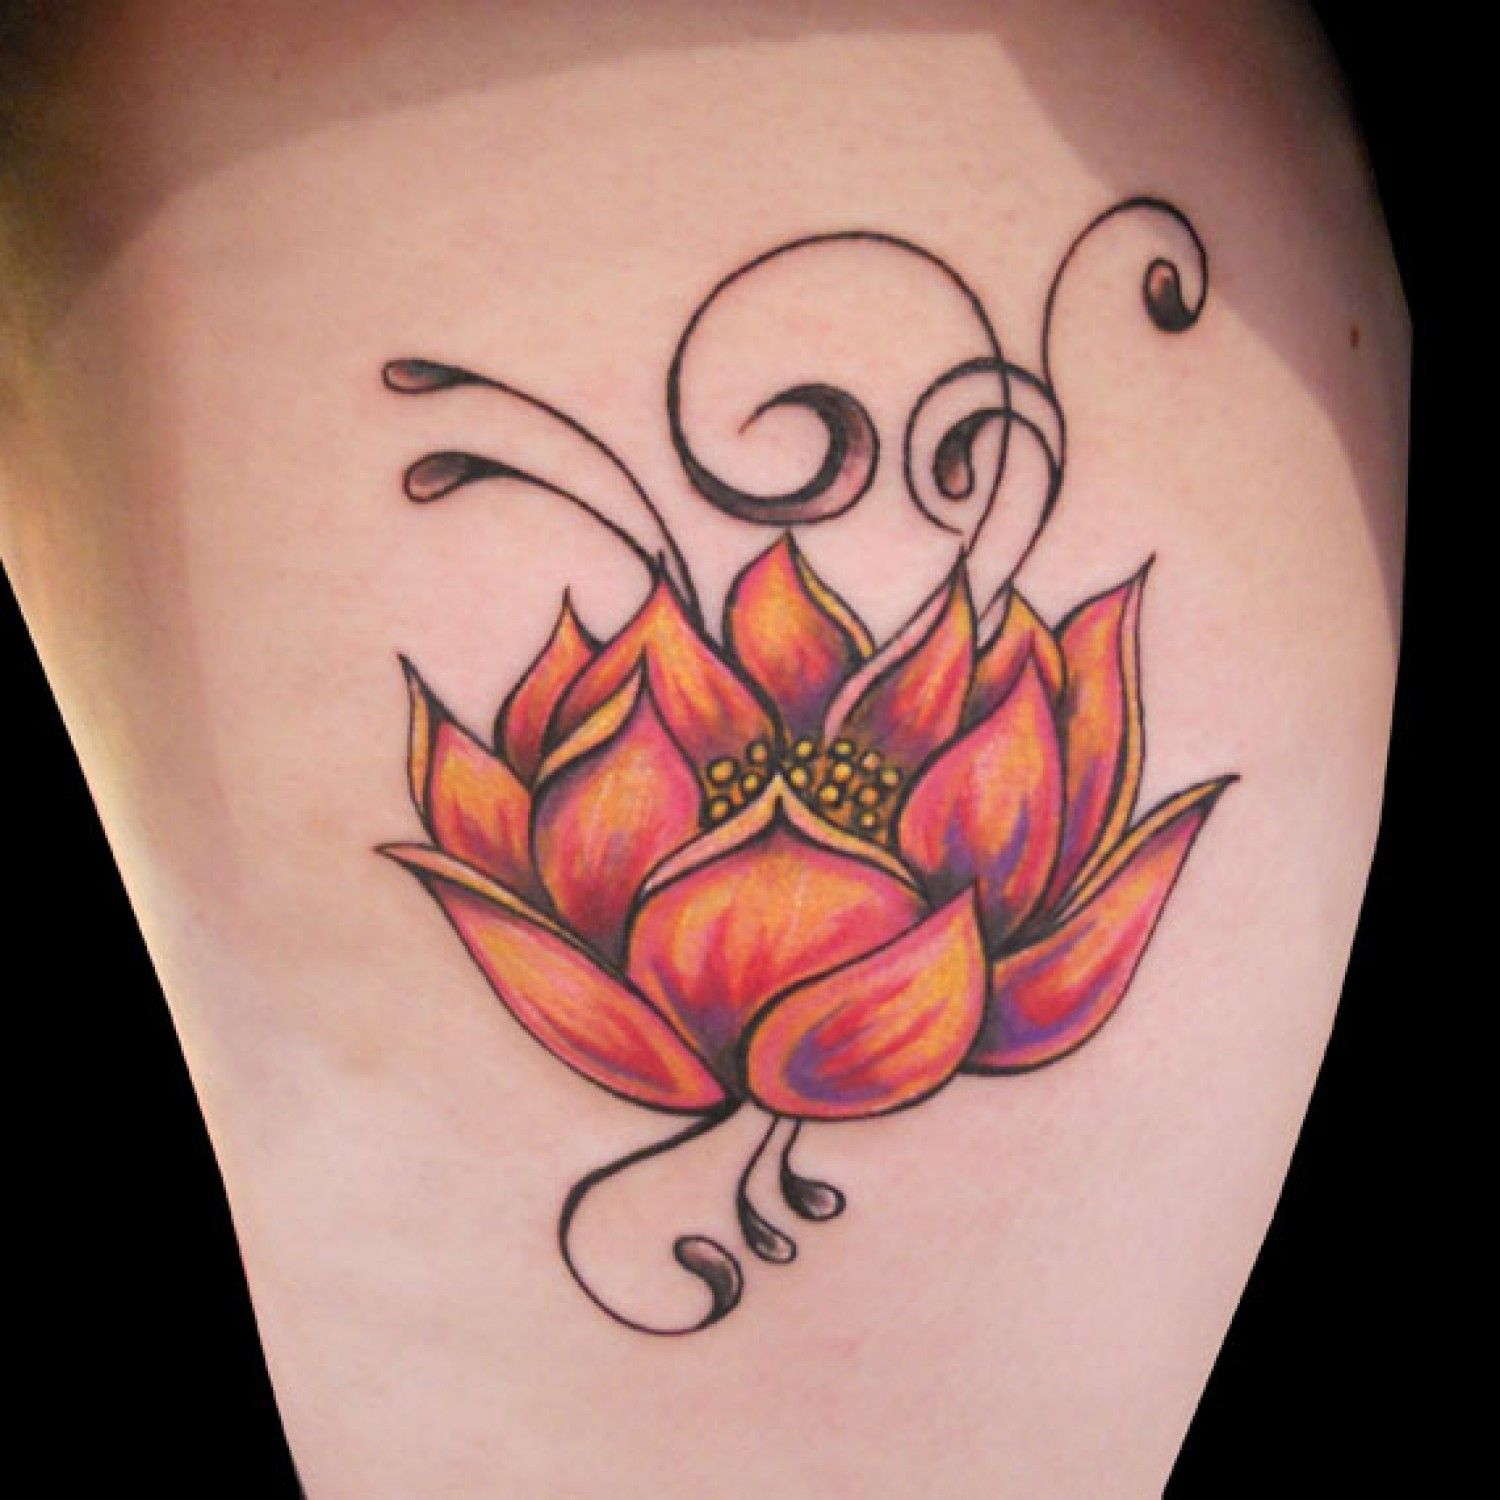 41 Lotus Flowers Tattoos That Are Absolutely Beautiful | Flower ...